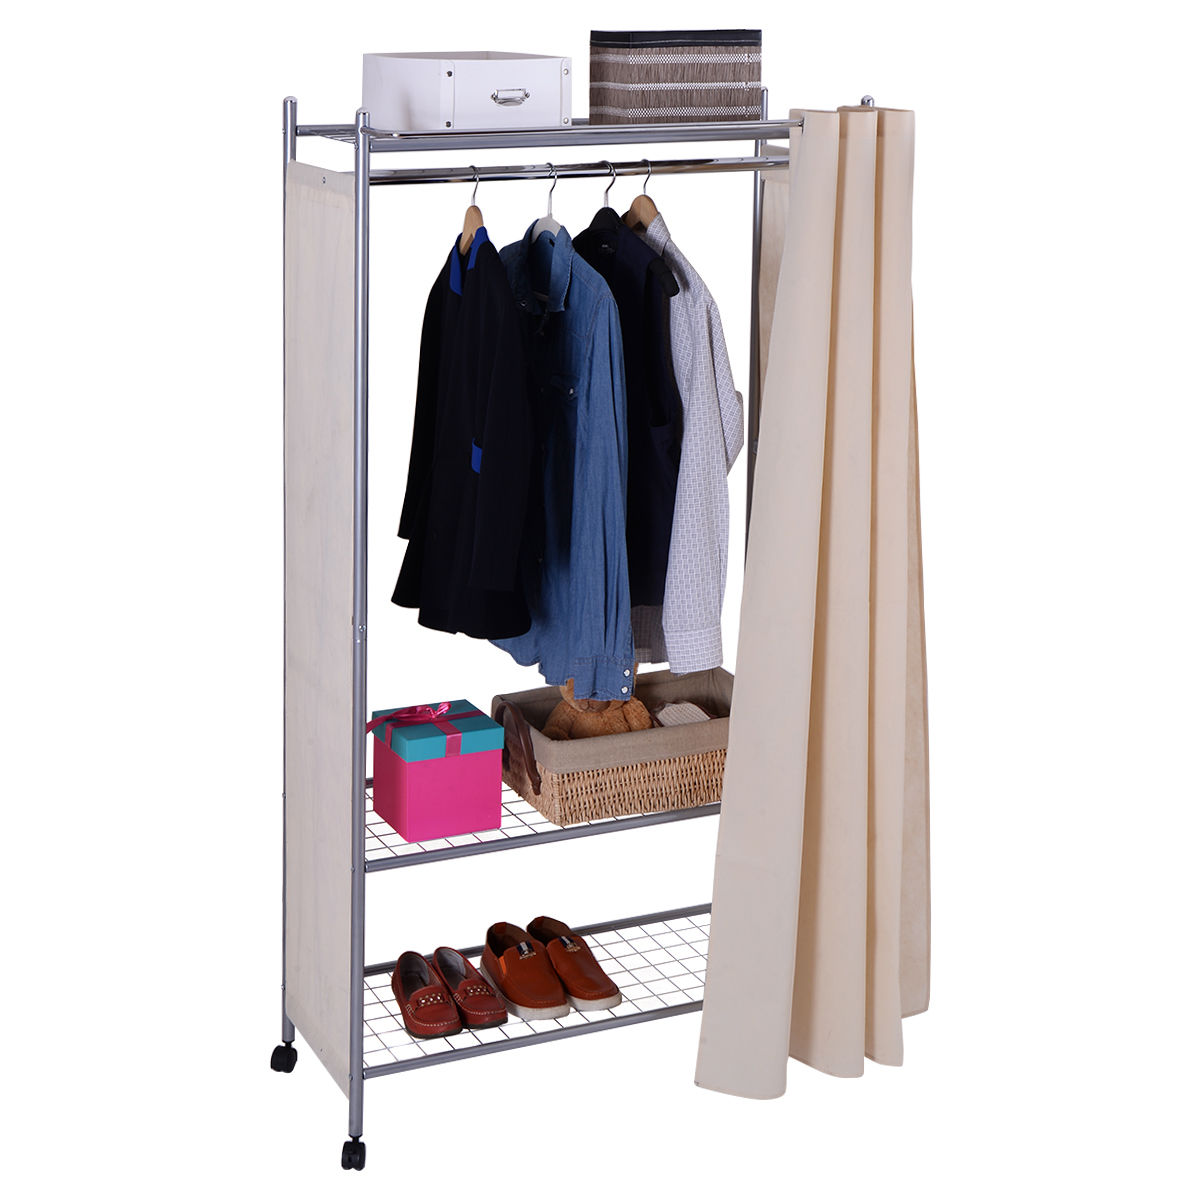 Costway 68'' Portable Closet Storage Organizer Clothes Wardrobe Shoe Rack Shelves W/Wheel